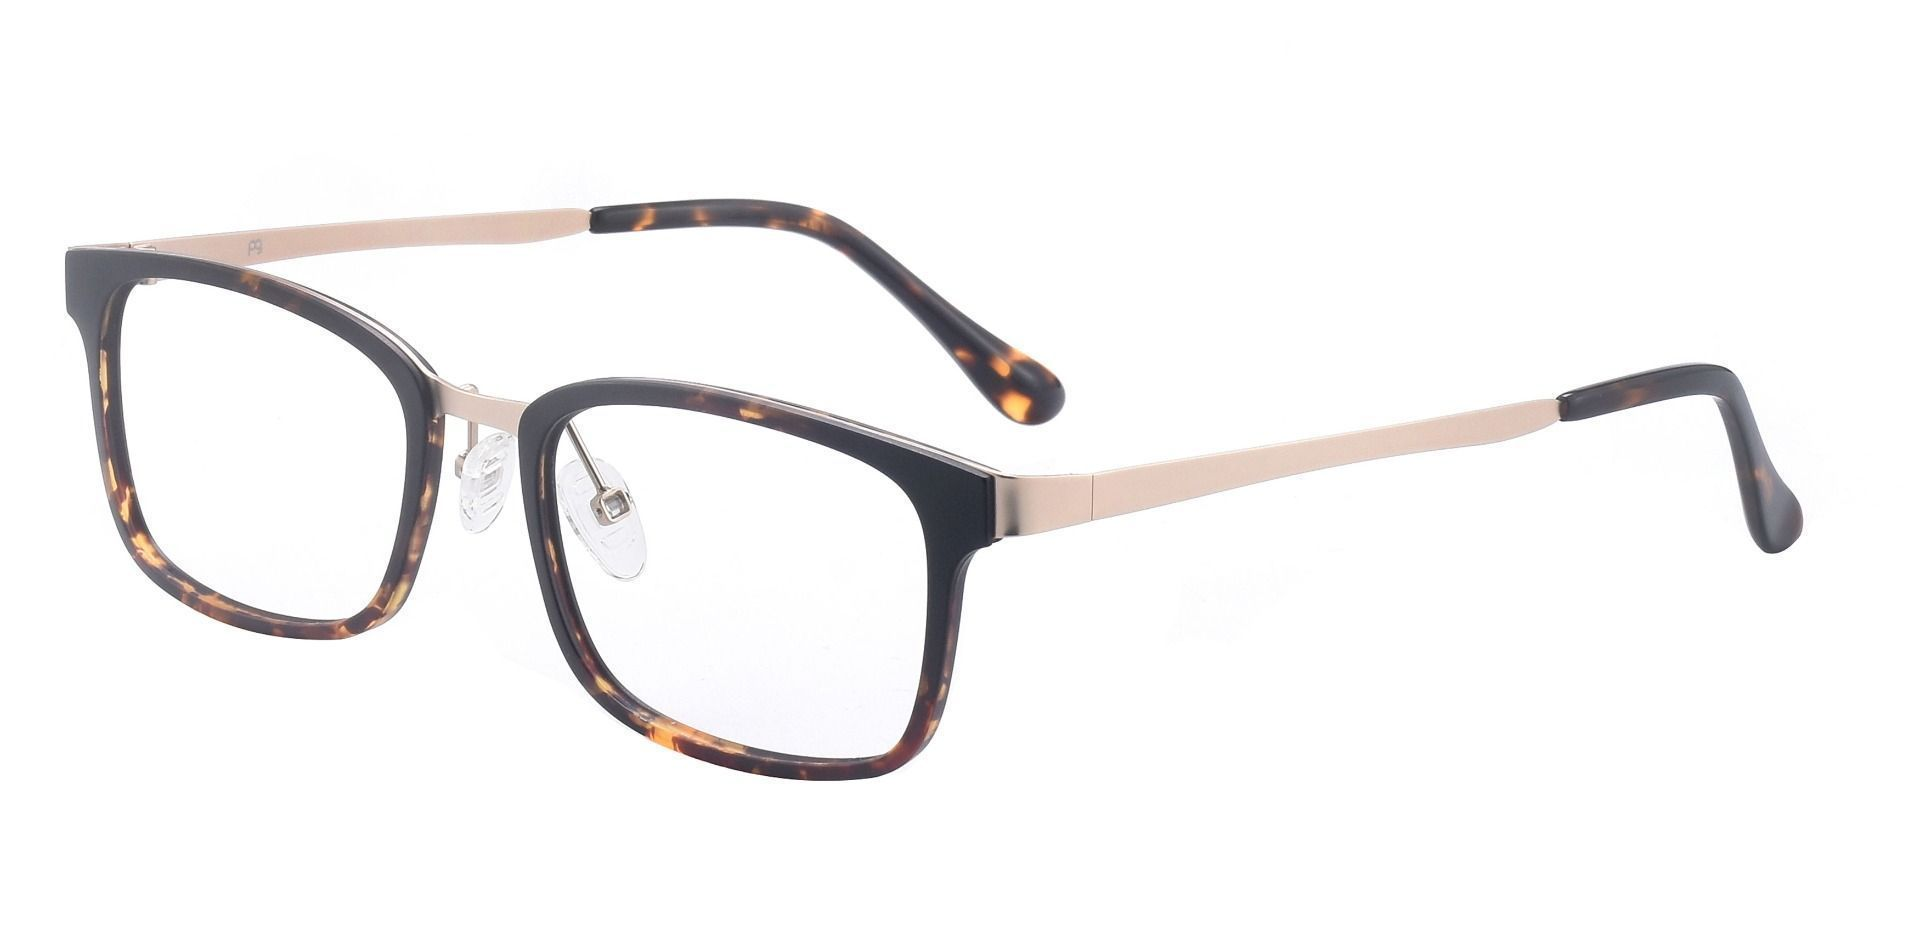 Kensington Square Prescription Glasses - Tortoise